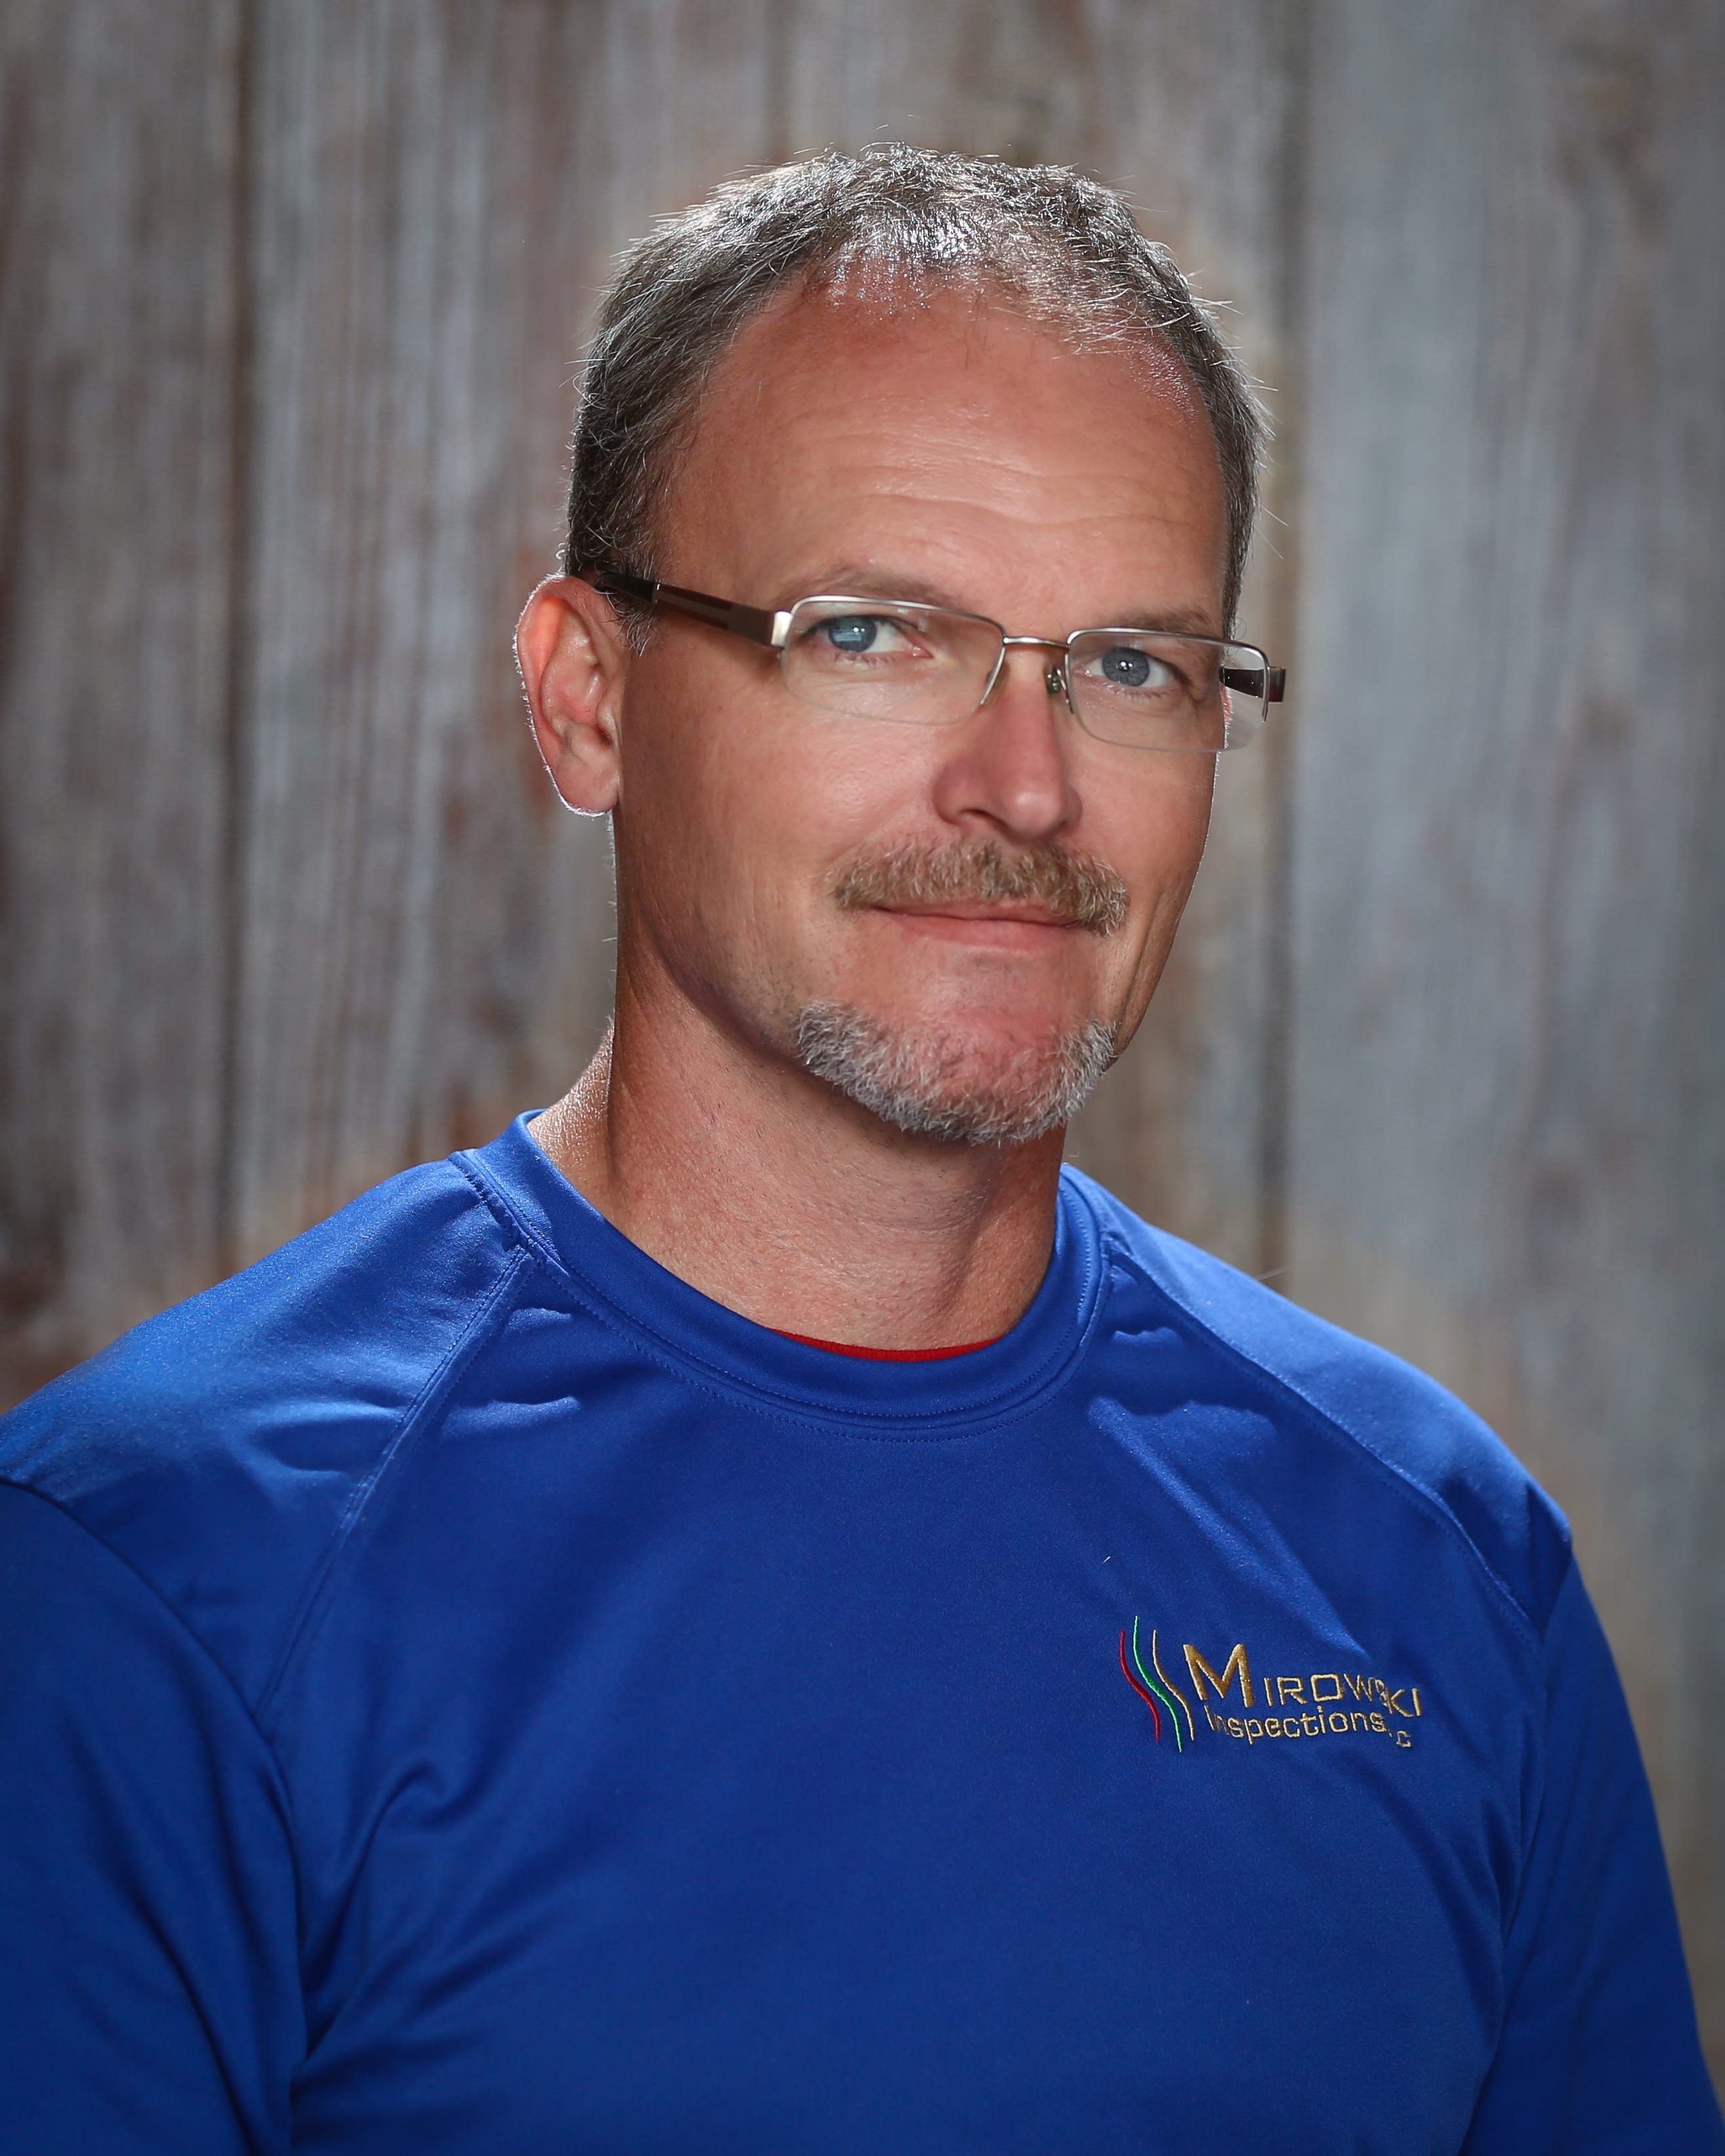 Steve Scott - Inspector Manager, Mirowski Inspections Old Home and Construction Specialist Home, Pest, Septic, and Environmental